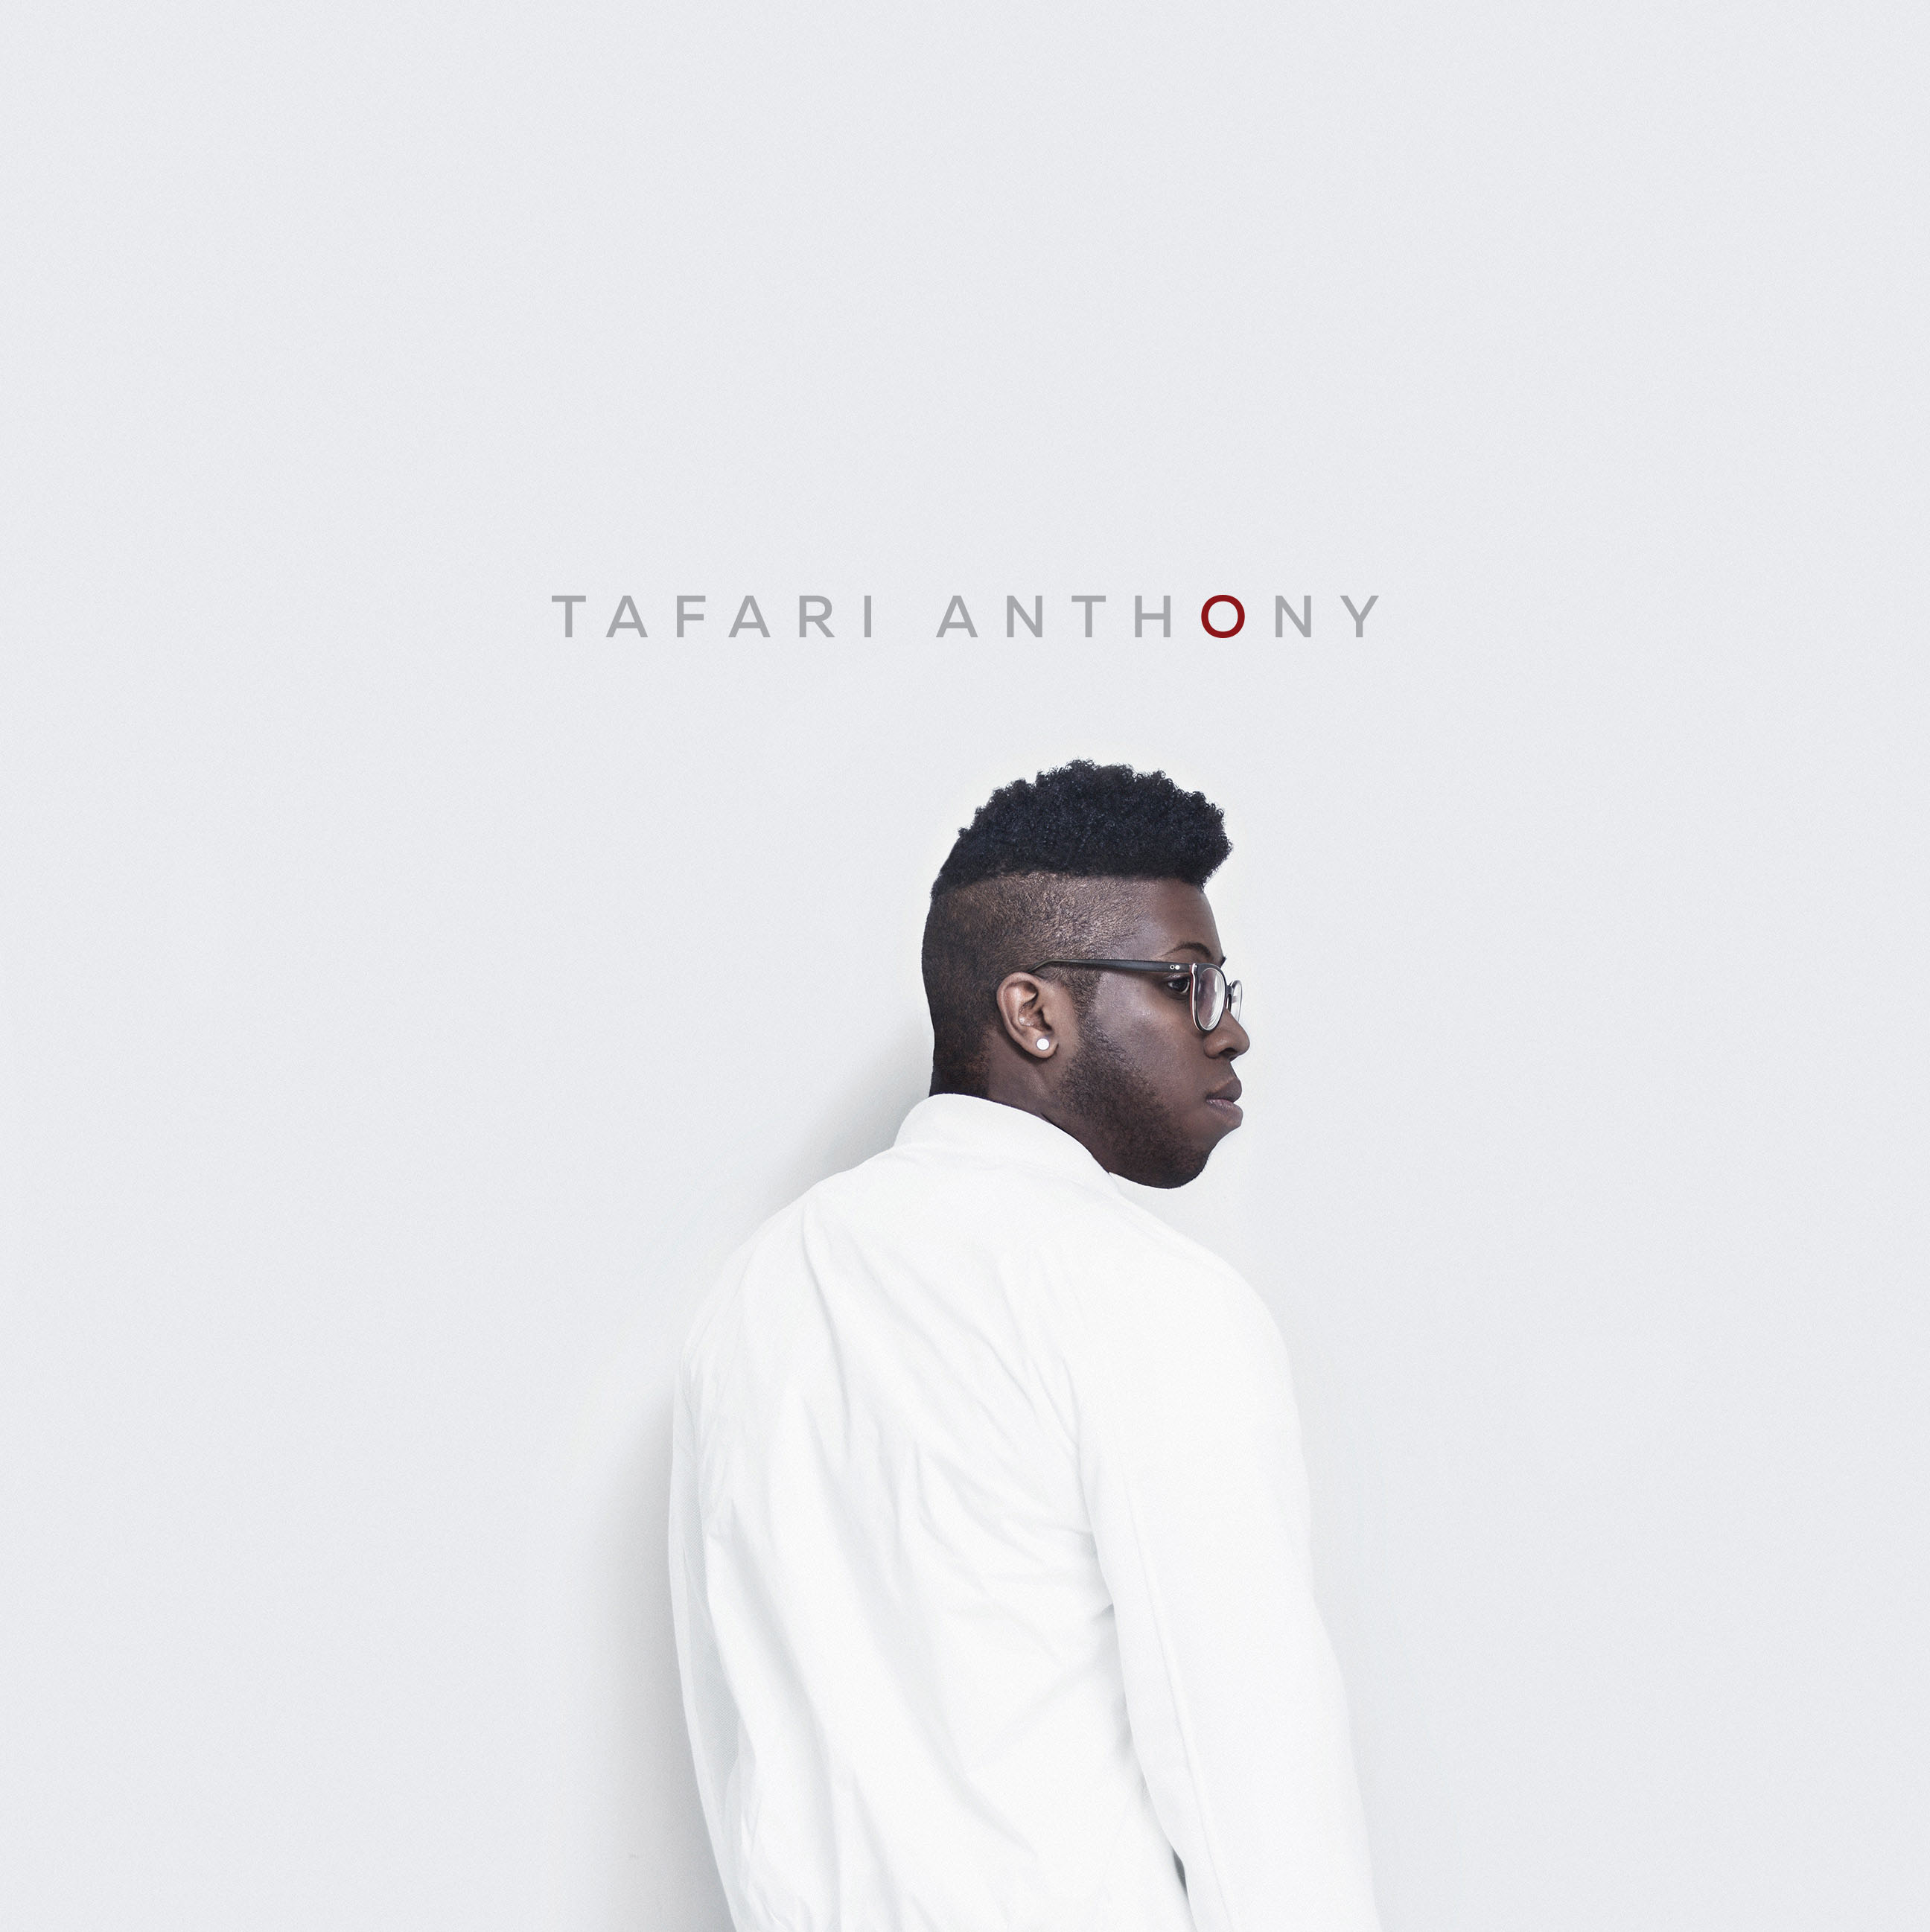 TAFARI ANTHONY MERGES SOUL AND POP WITH NEW DIE FOR YOU EP